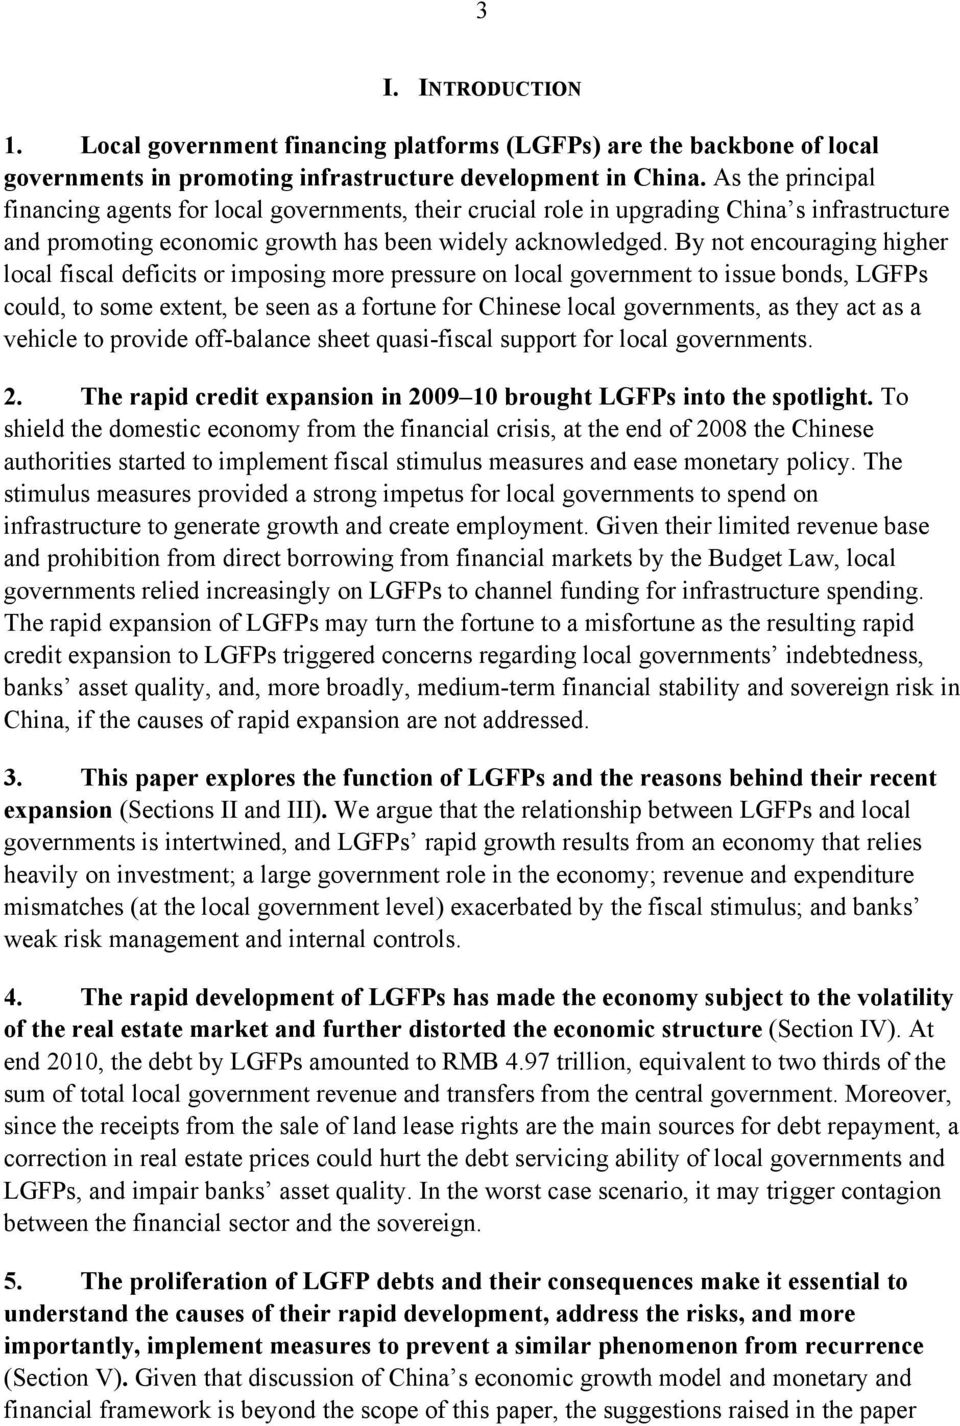 By not encouraging higher local fiscal deficits or imposing more pressure on local government to issue bonds, LGFPs could, to some extent, be seen as a fortune for Chinese local governments, as they